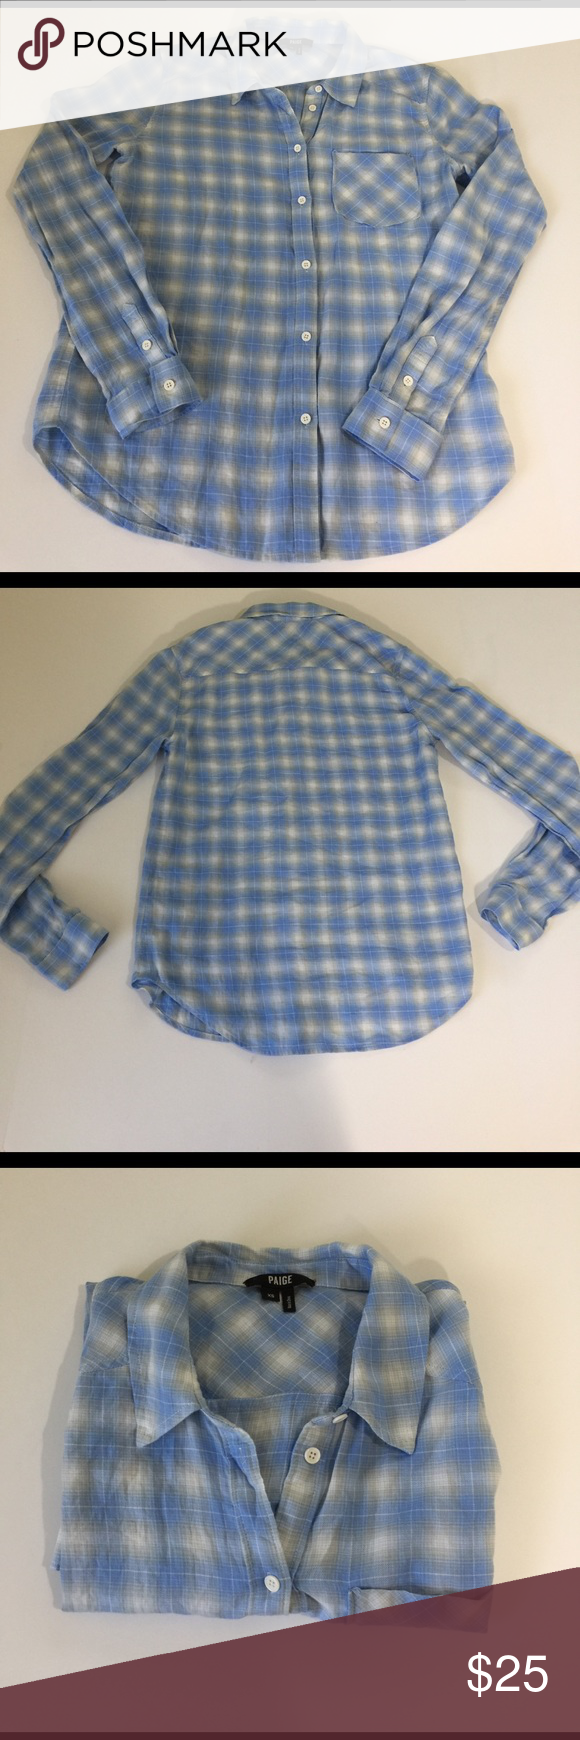 "Paige Plaid button Down Shirt, size XS NWOT Paige Plaid Button Down Shirt in size XS, NWOT. Colors are cornflower blue, grey, and white. Measures flat 24"" from shoulder to hem, and 18"" from armpit to armpit. Made from 100% cotton. Please ask if you have any questions. Paige Jeans Tops Button Down Shirts"